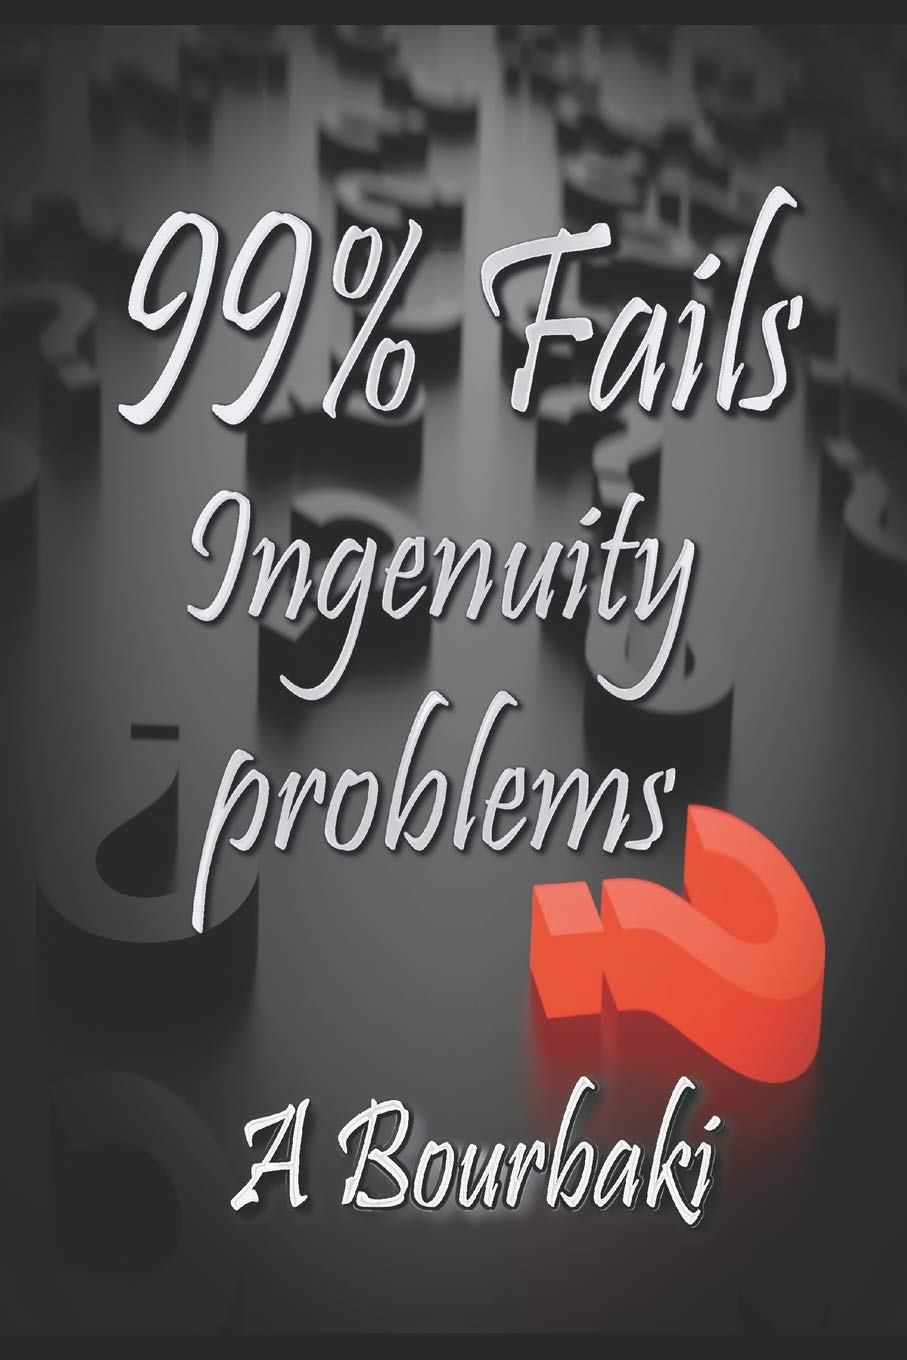 99% Fails: Ingenuity problems.: Amazon.es: Alexander Bourbaki: Libros en  idiomas extranjeros